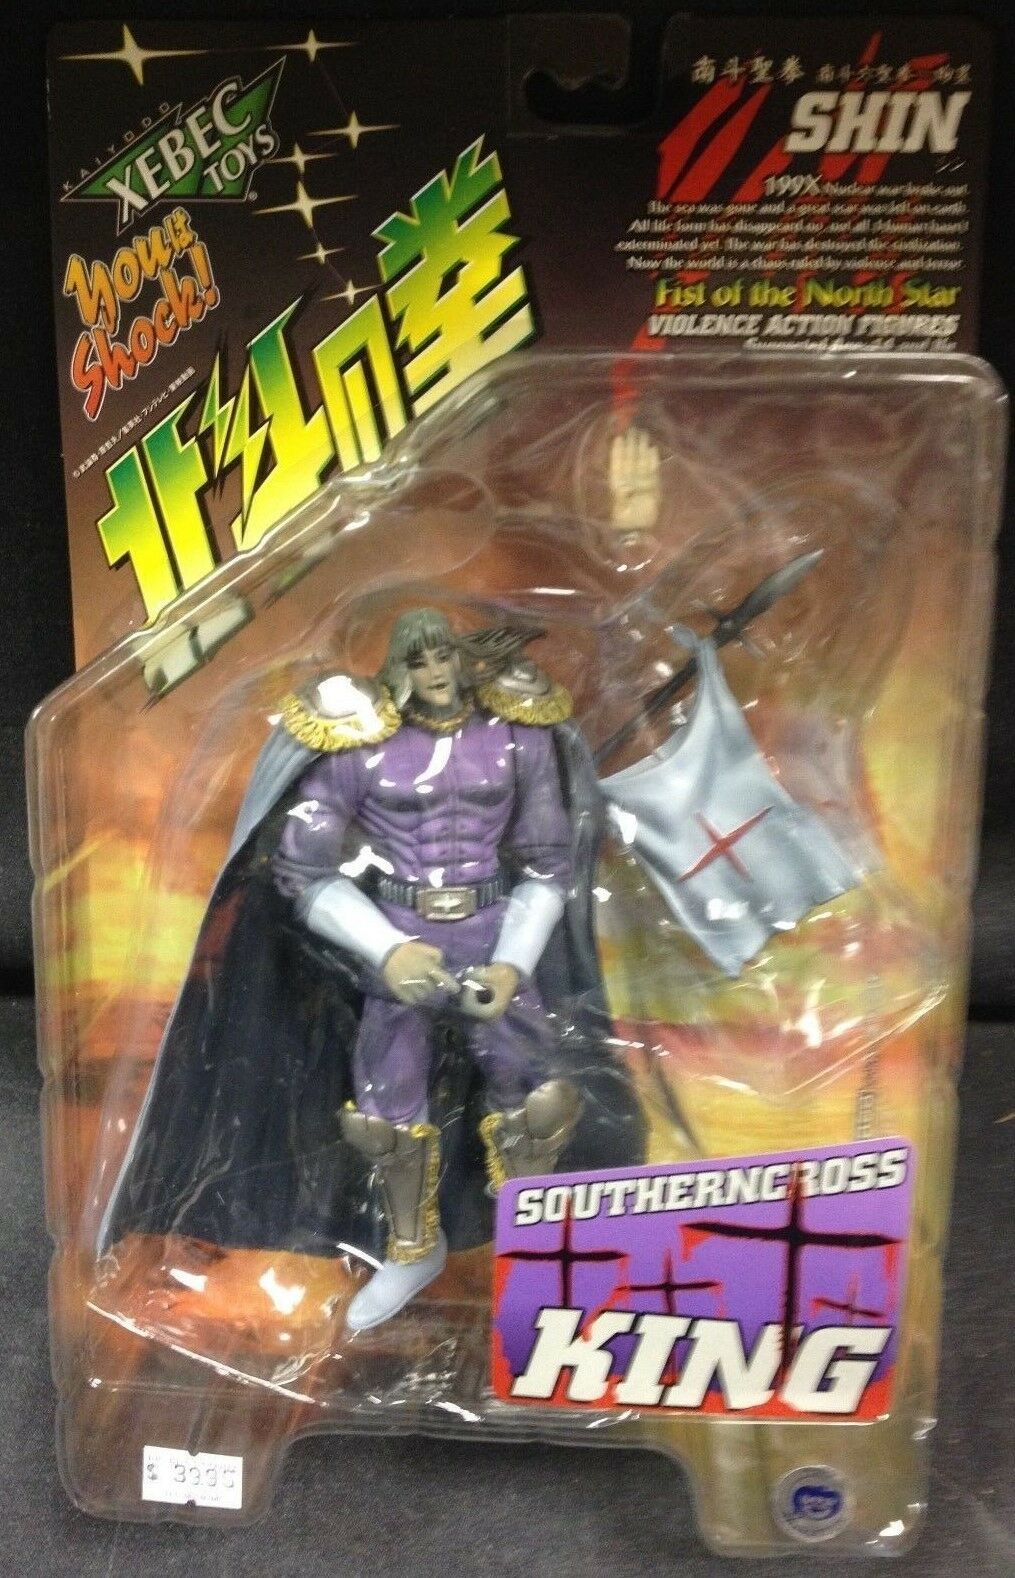 XEBEC KAIYODO FIST OF OF OF THE NORTHSTAR SHIN ACTION FIGURE SOUTHERN CROSS KING NIB 582e4a